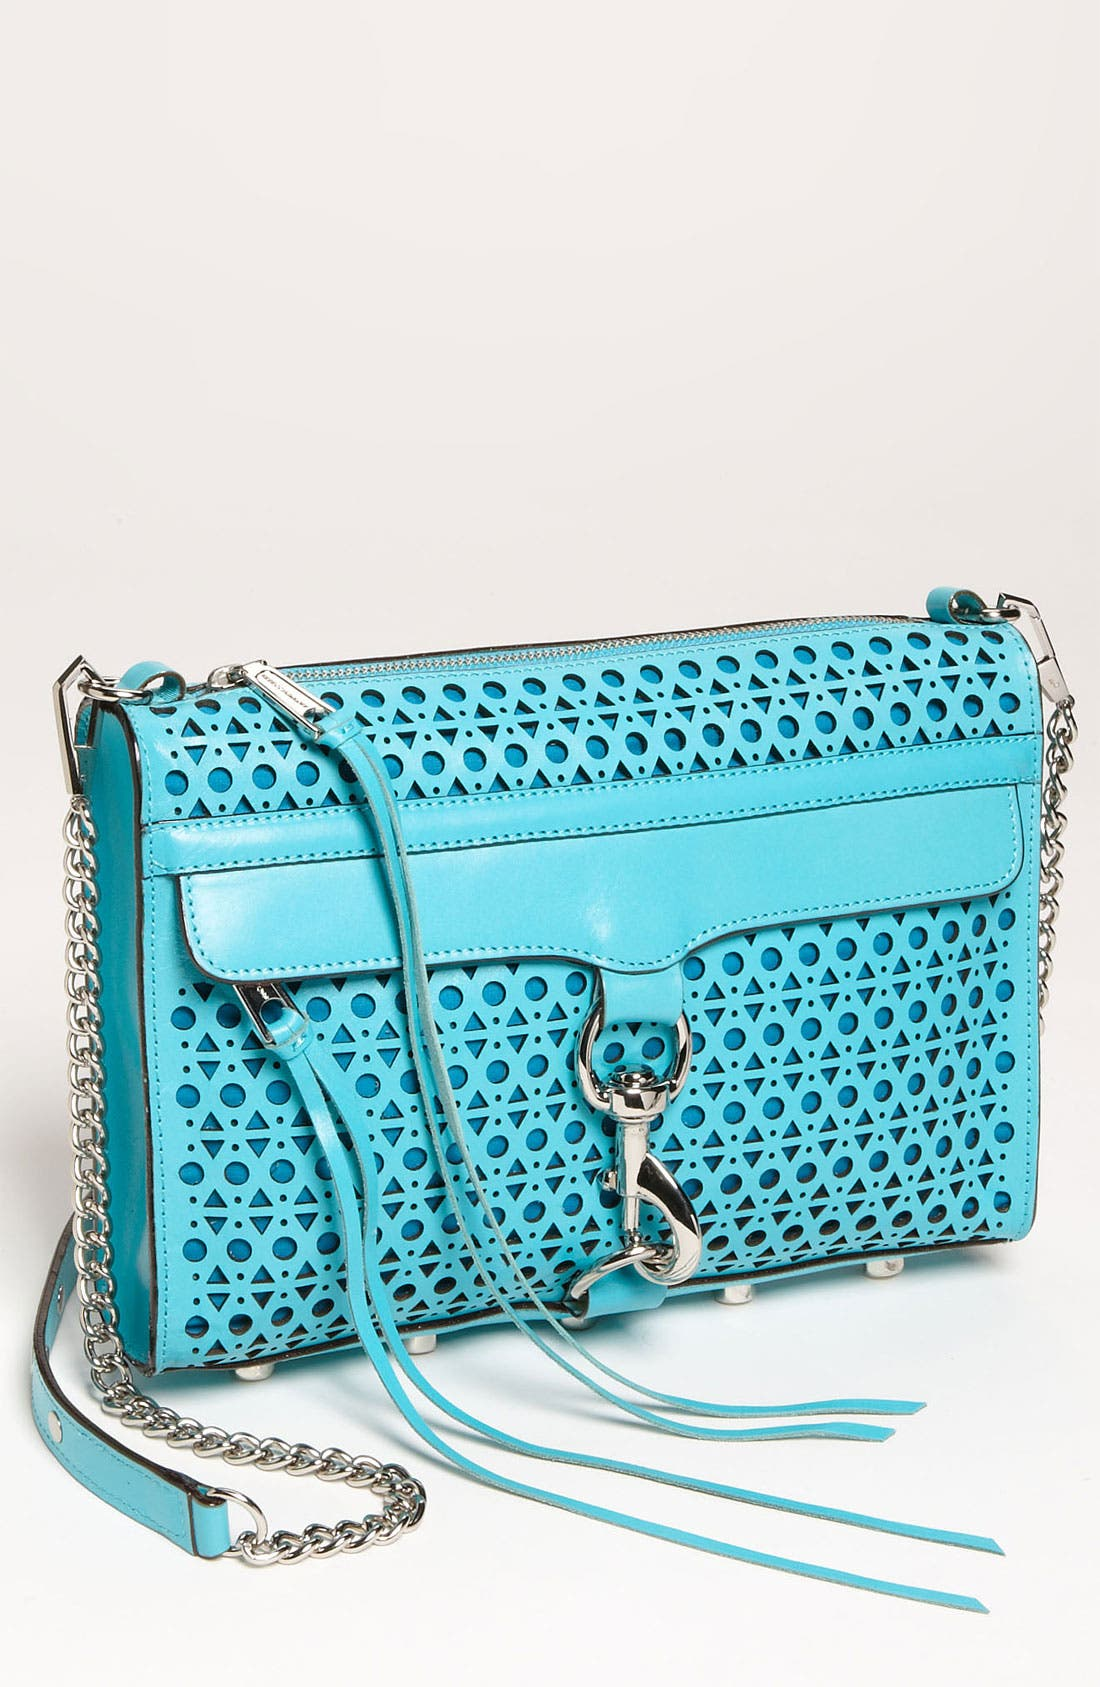 Alternate Image 1 Selected - Rebecca Minkoff 'MAC' Shoulder Bag